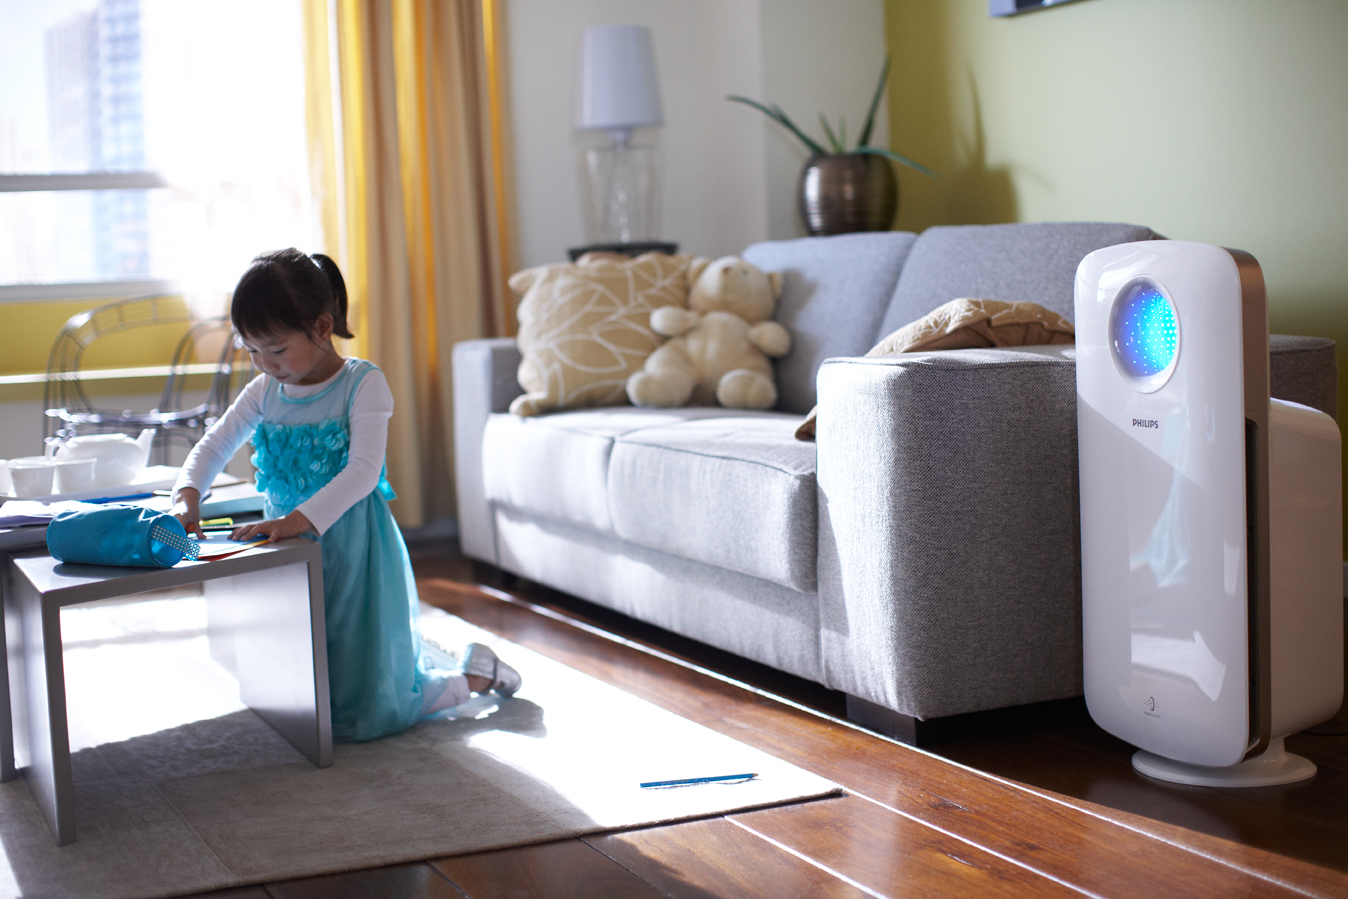 elegant white air purifiers for smoker with slim model aside white sofe on wooden floor with kid friendly coffee table